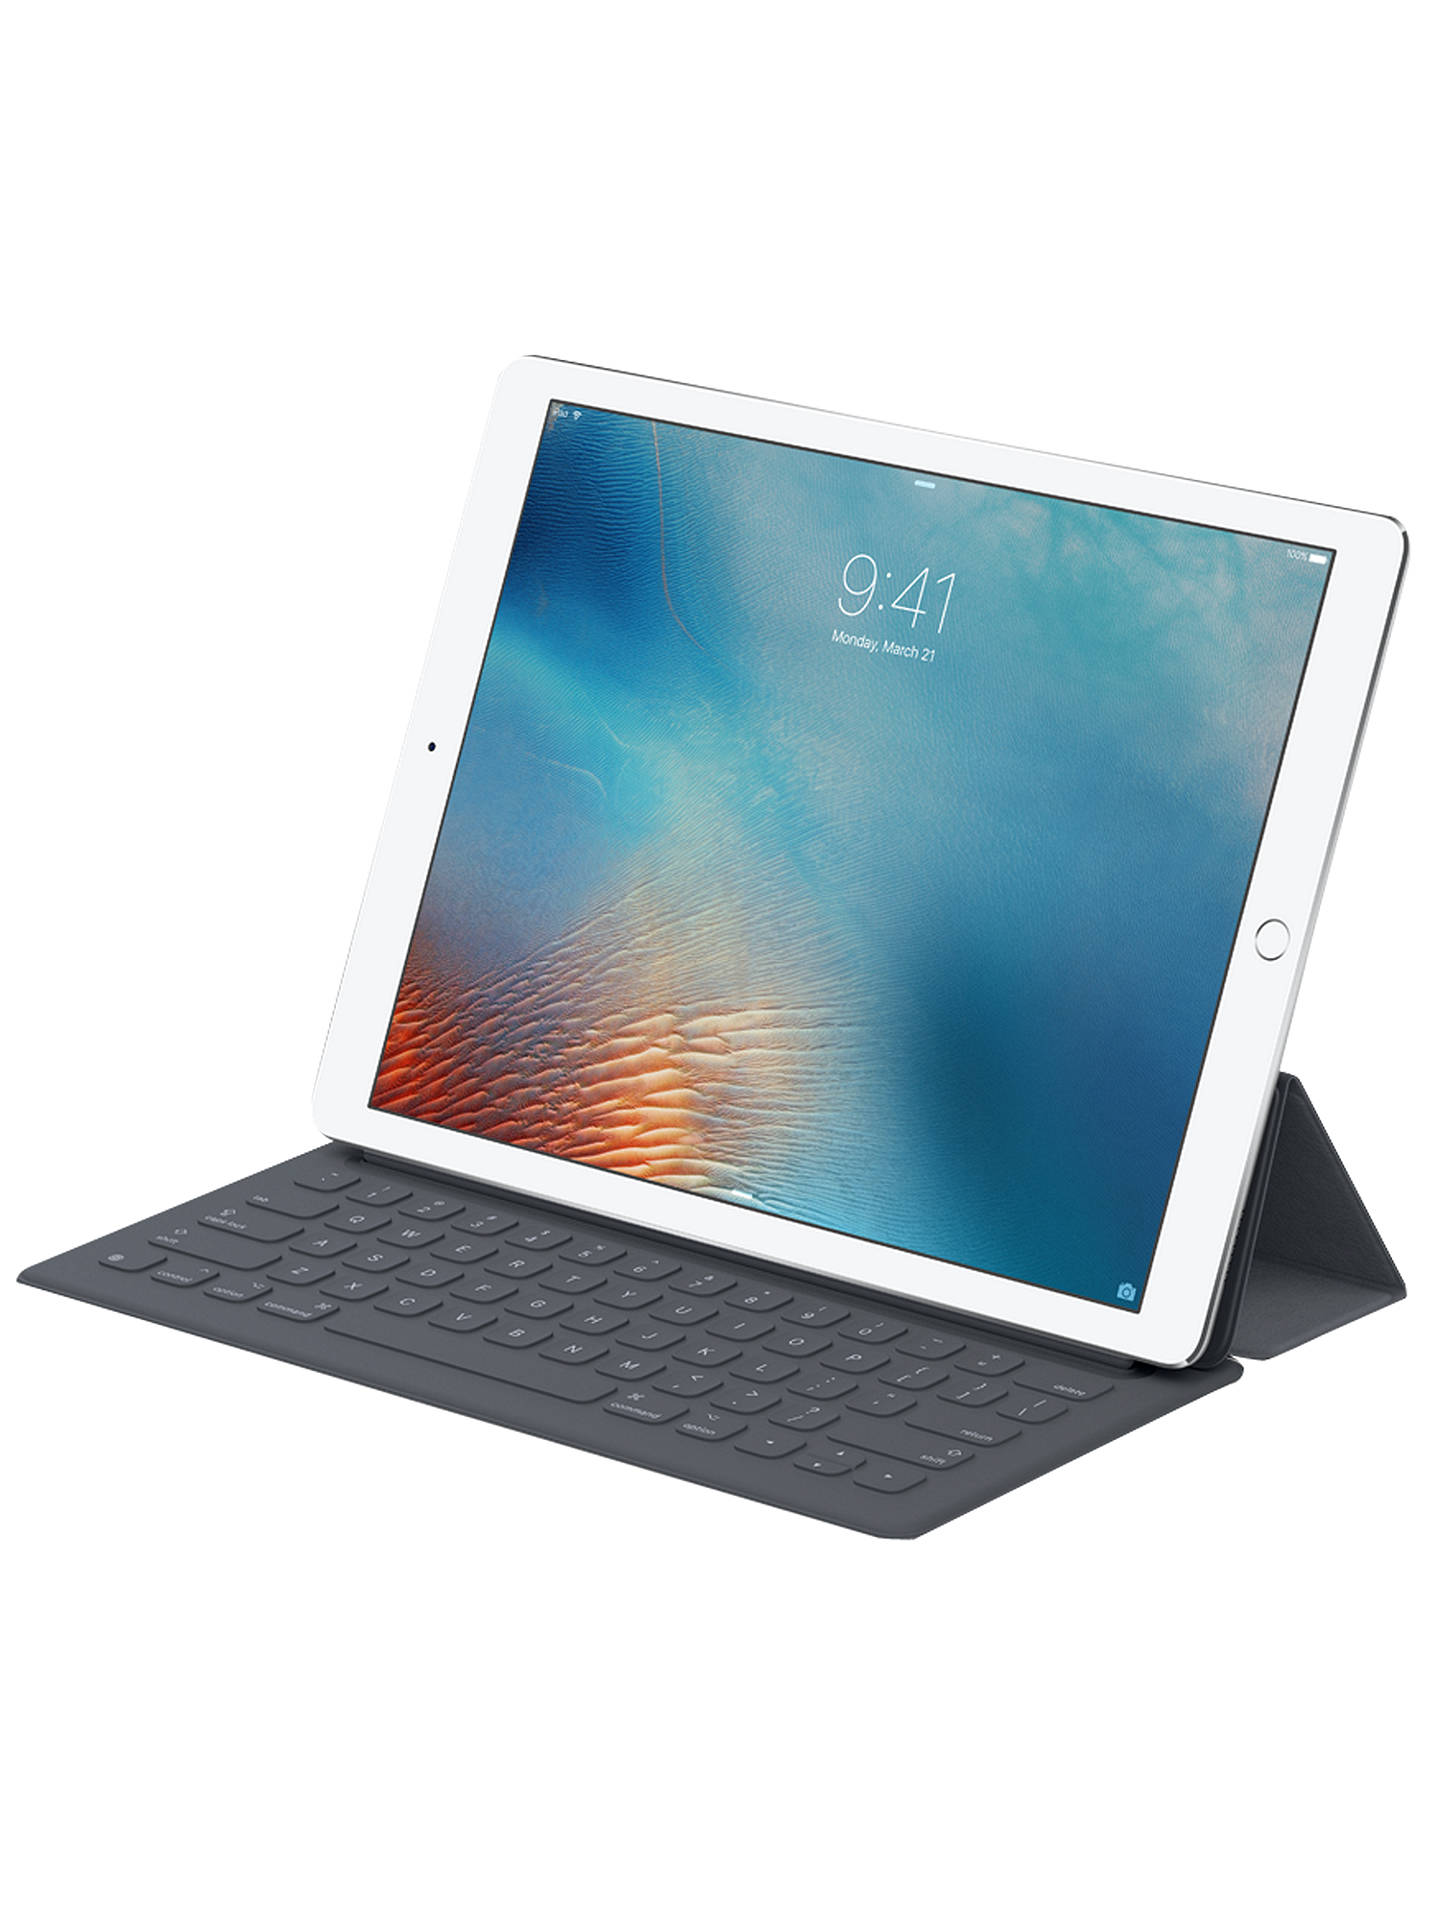 apple smart keyboard 12.9 accessory not supported